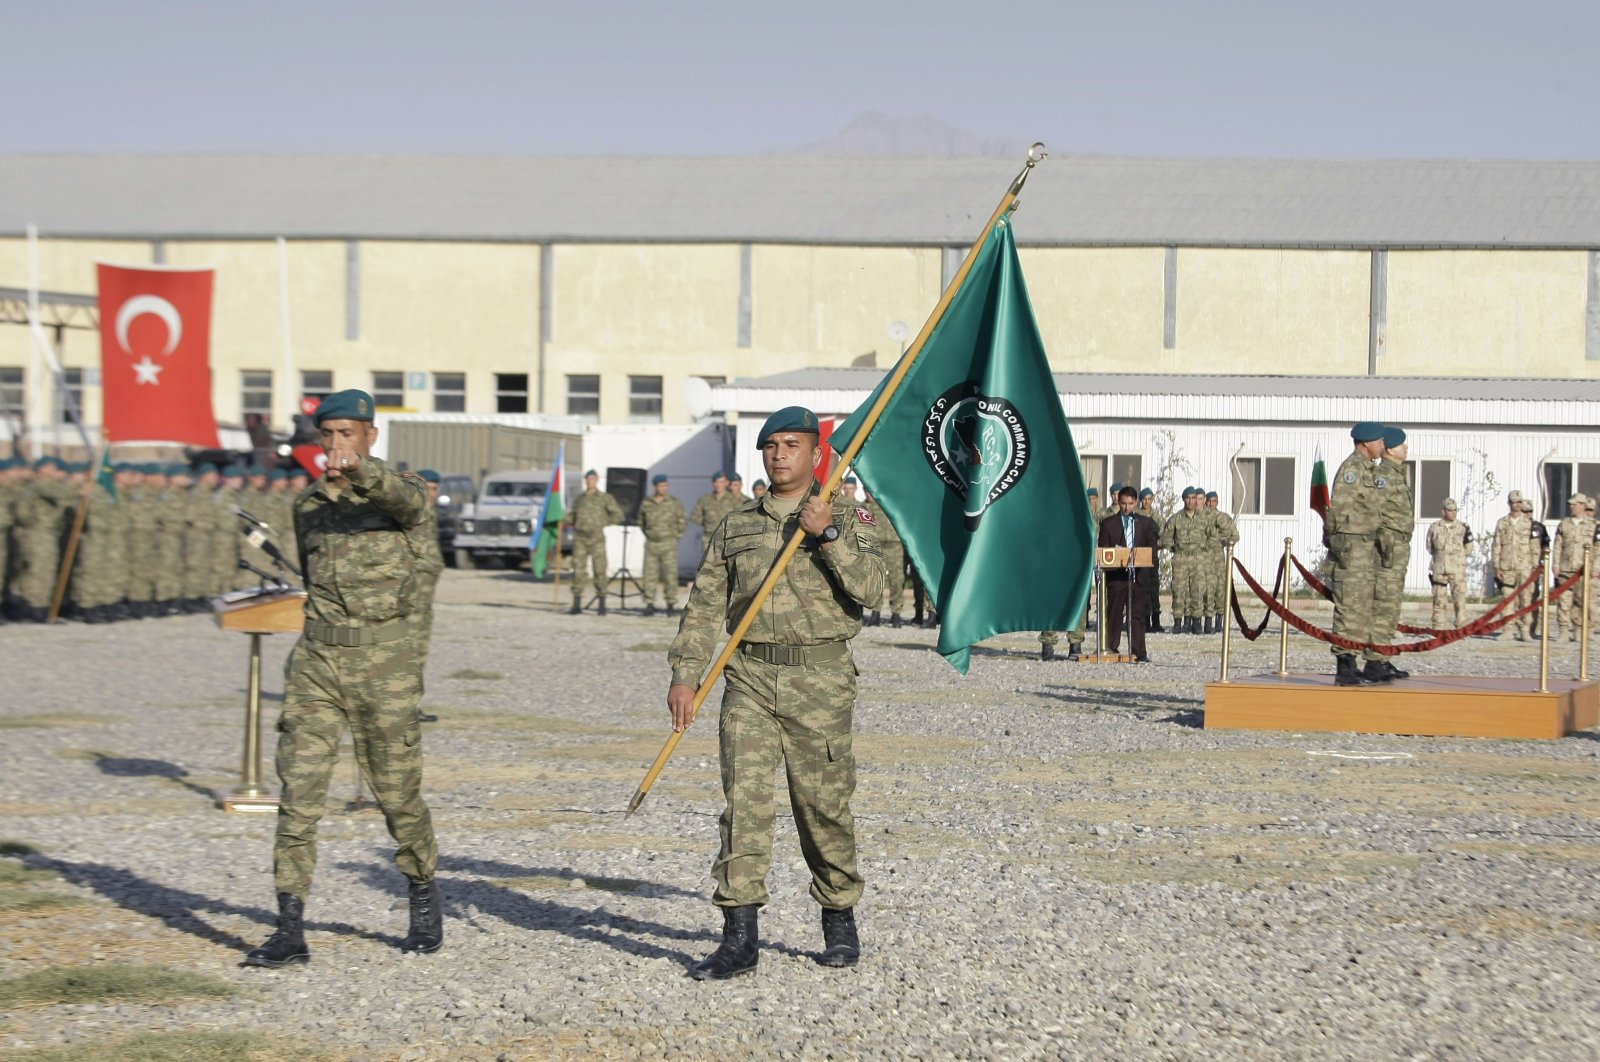 A Turkish soldier, part of the NATO forces, carries a flag of the Regional Command Capital during a change of command ceremony at NATO's Turkish run camp Dogan in Kabul, Afghanistan, Oct. 29, 2012. (AP File Photo)